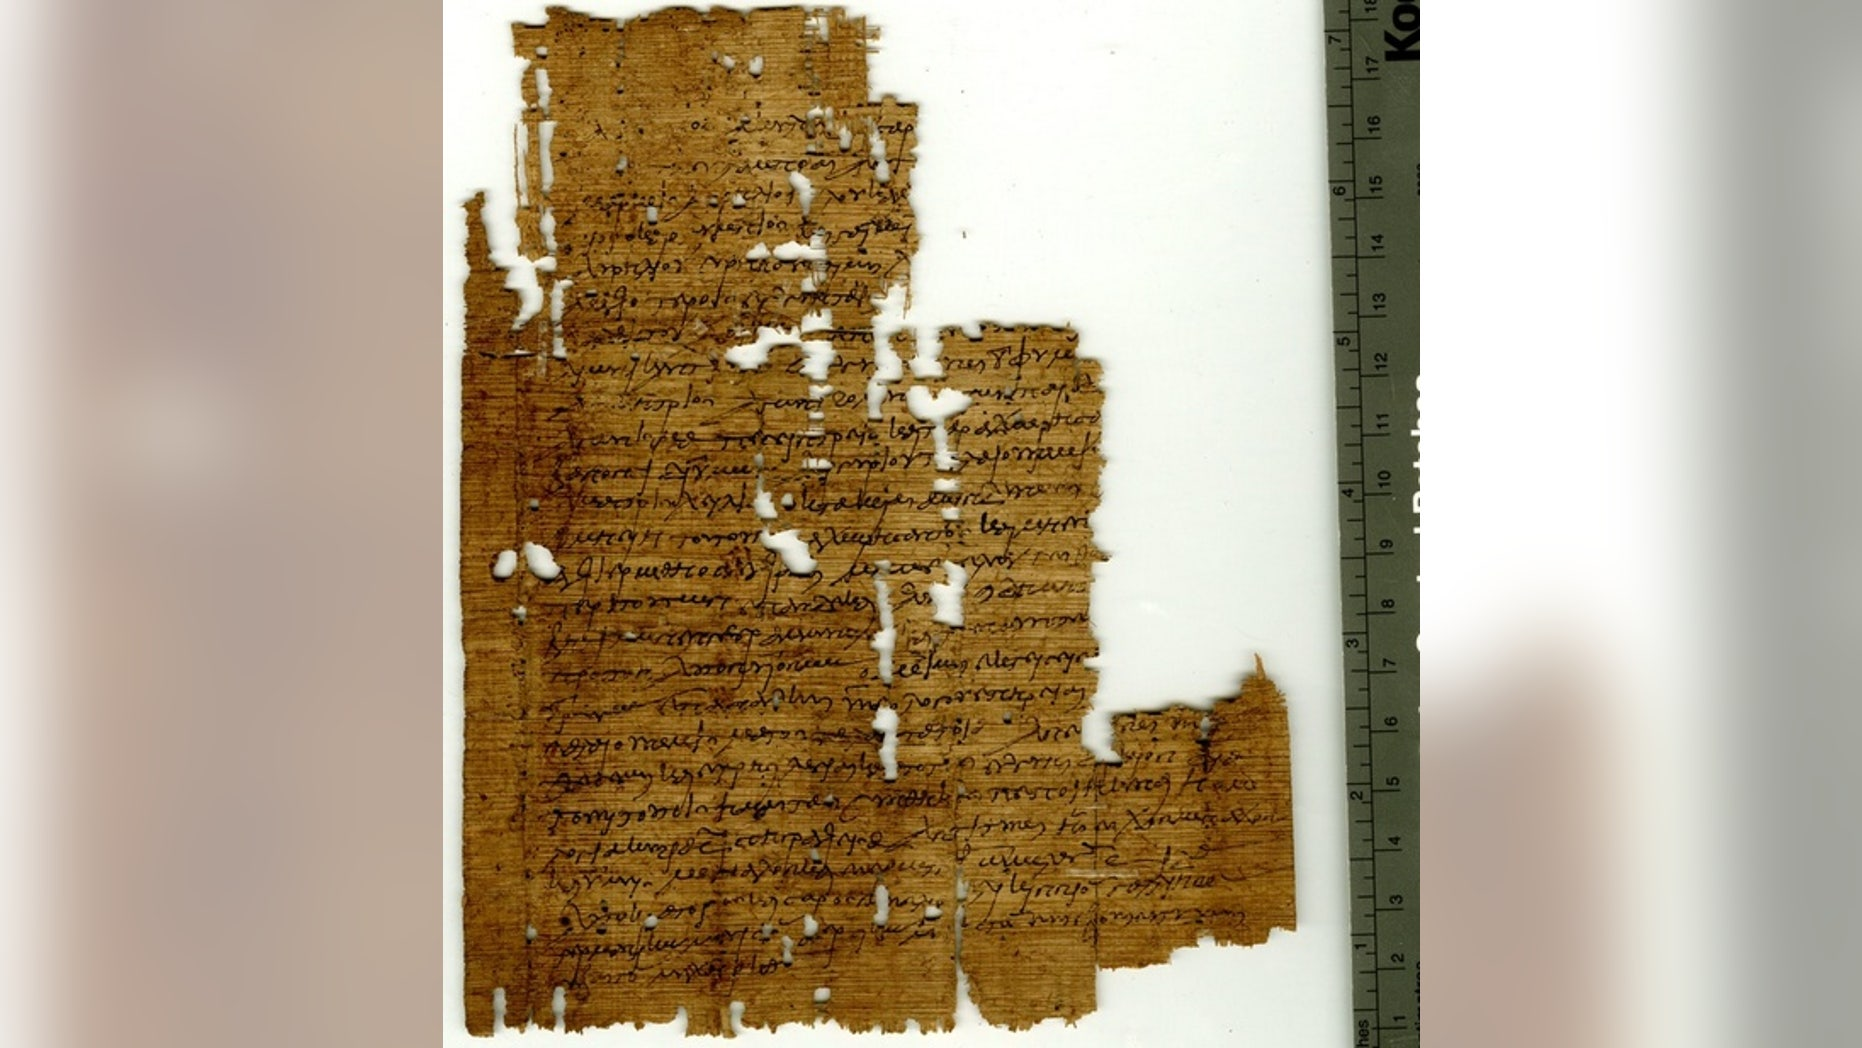 Researchers have deciphered a contract, pictured here, that was written in A.D. 267 between the guarantors of two wrestlers named Nicantinous and Demetrius. In it the father of Nicantinous pledges to pay Demetrius 3,800 drachma if he allows Nic